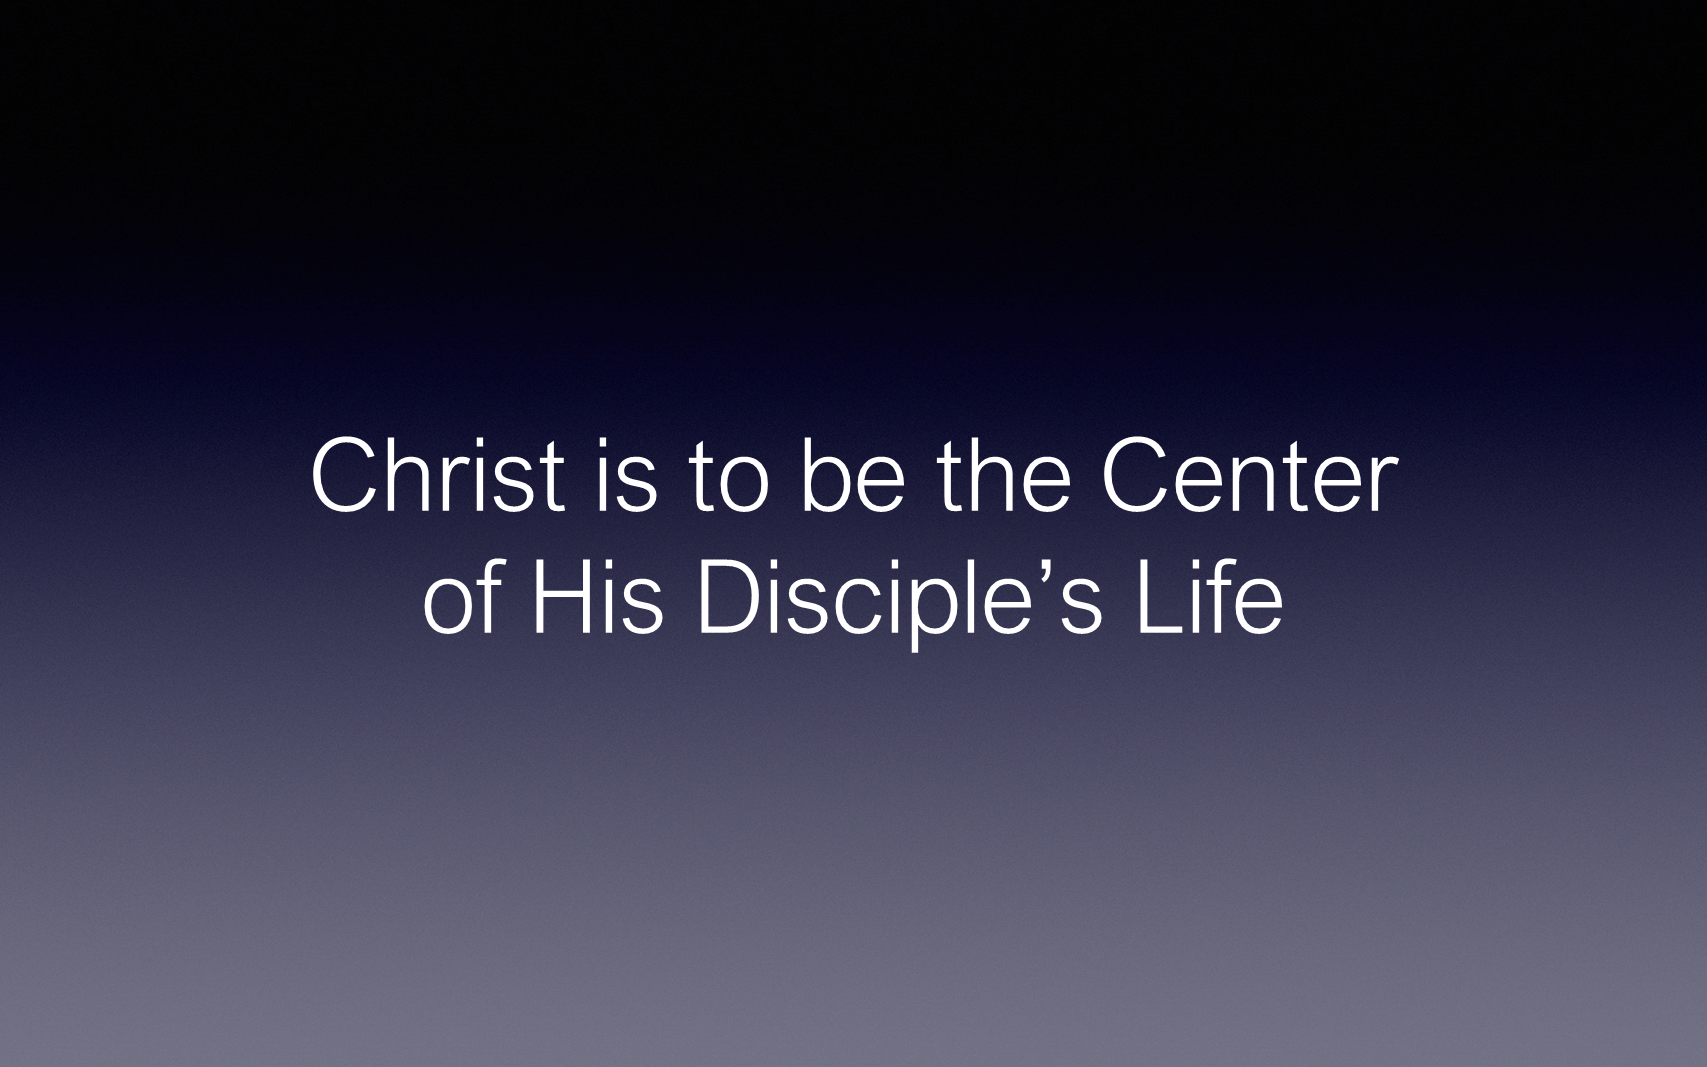 ESH-12 - The Discipline Of Disciple-Making - Christ - The Center Of The Disciple's Life (3)